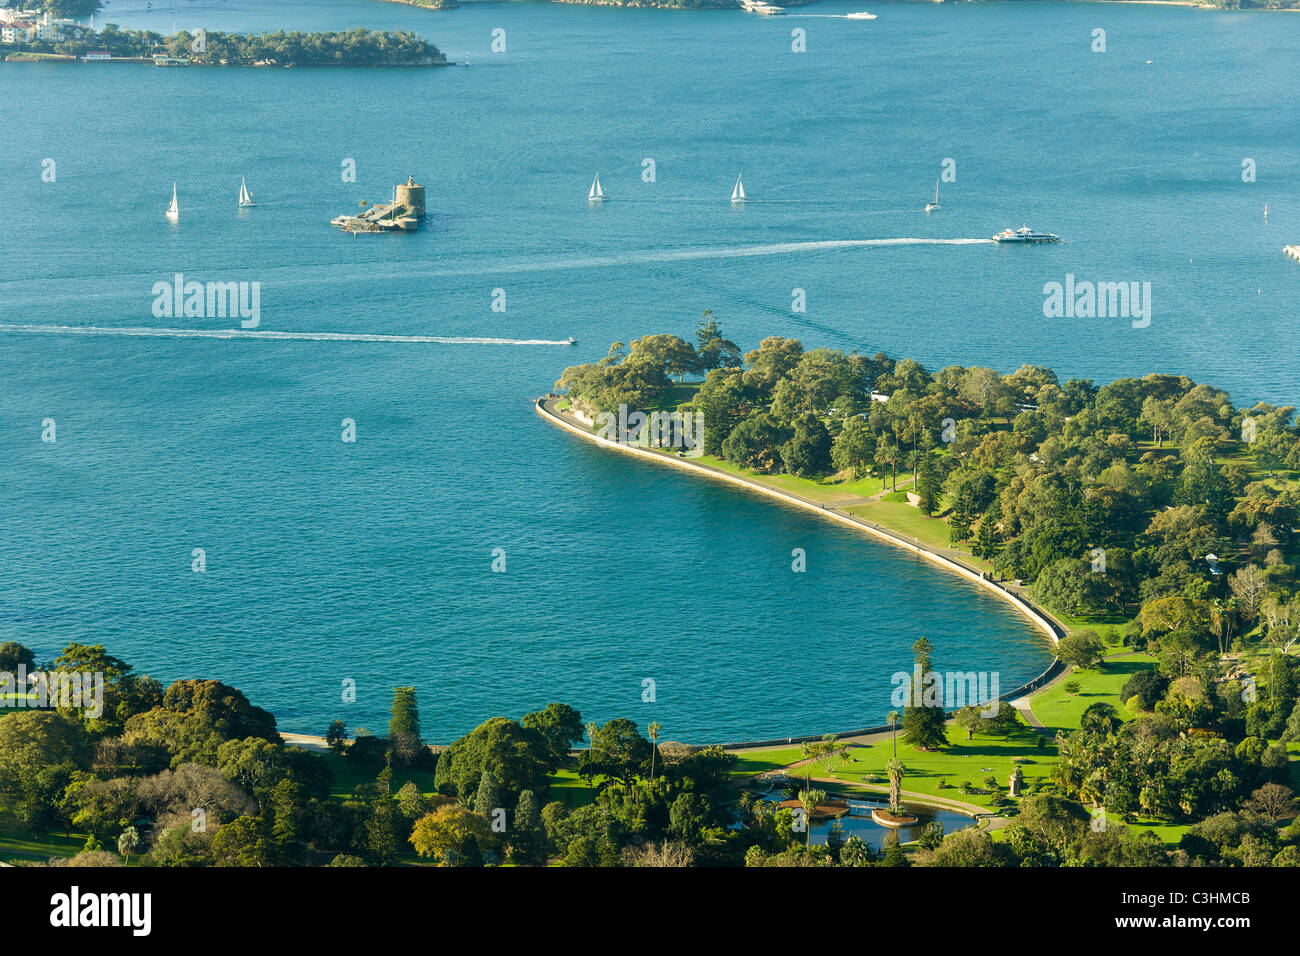 Sydney NSW Australia, aerial view of Farm Cove, Royal Botanic Gardens, Mrs Macquaries Chair and Fort Denison. - Stock Image